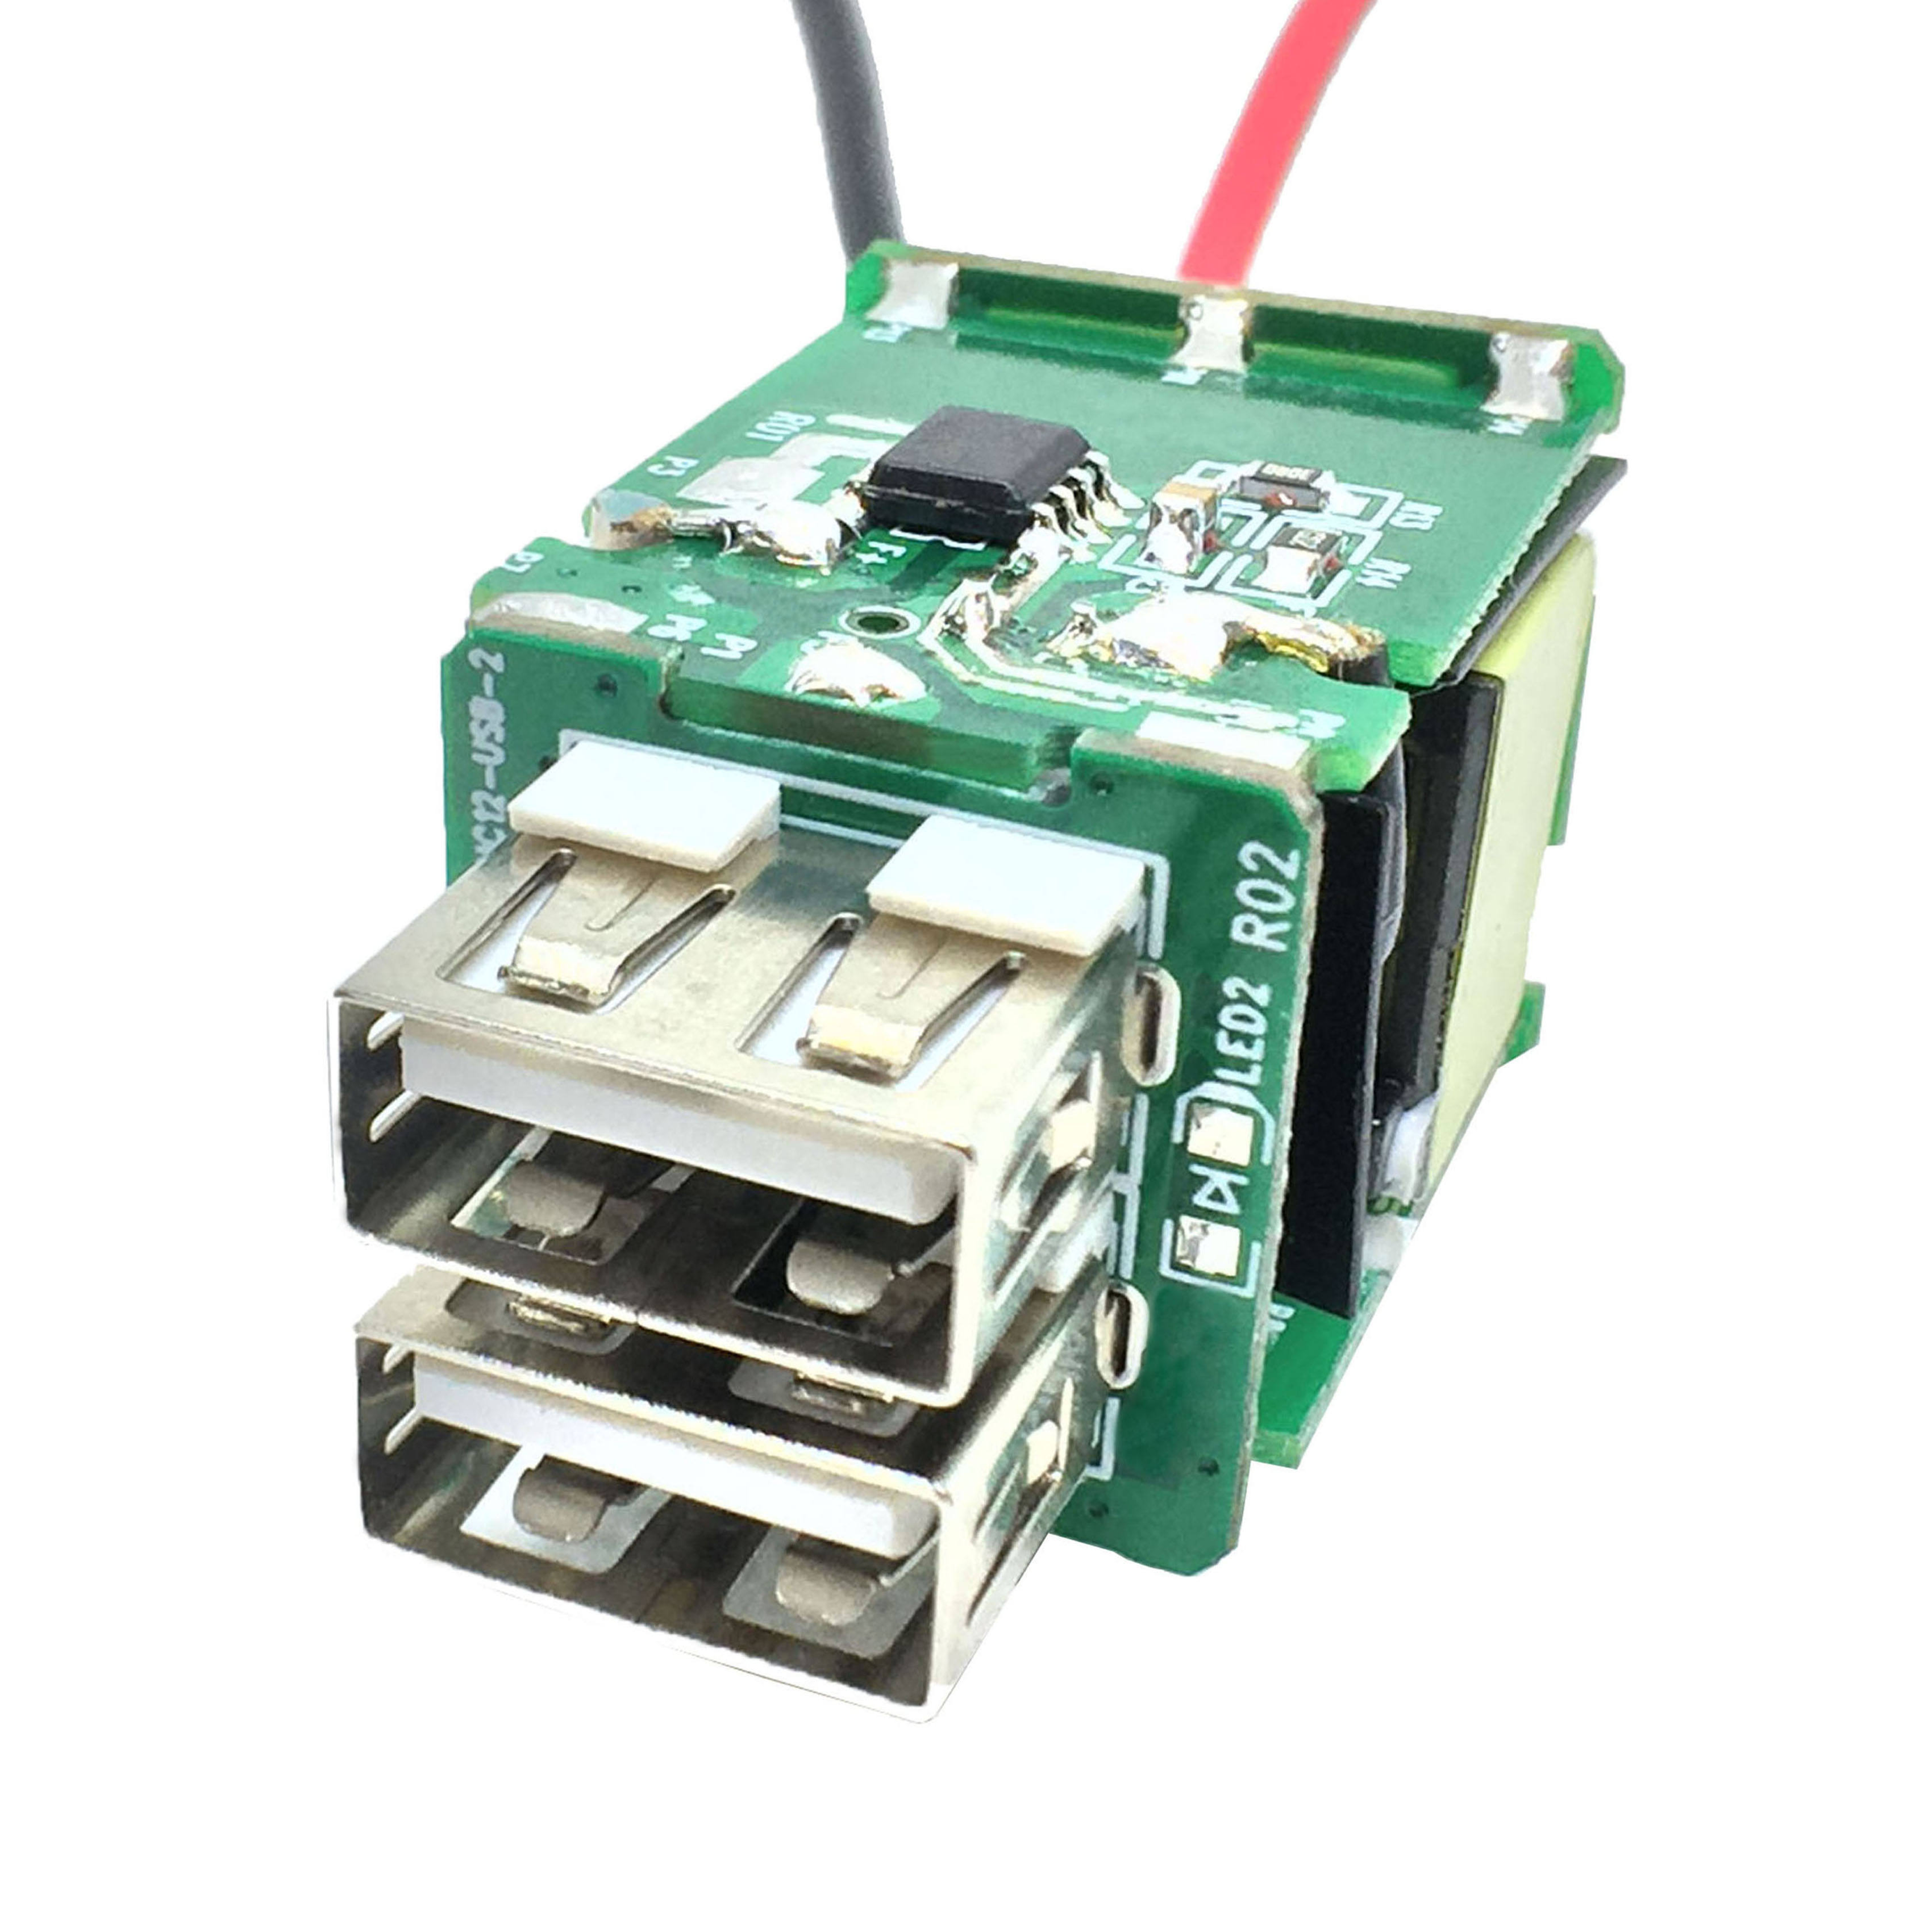 l.m.o 0704 5V2A mobile phone usb charger pcb pcb circuit boards mini fm transmitter and receiver pcb